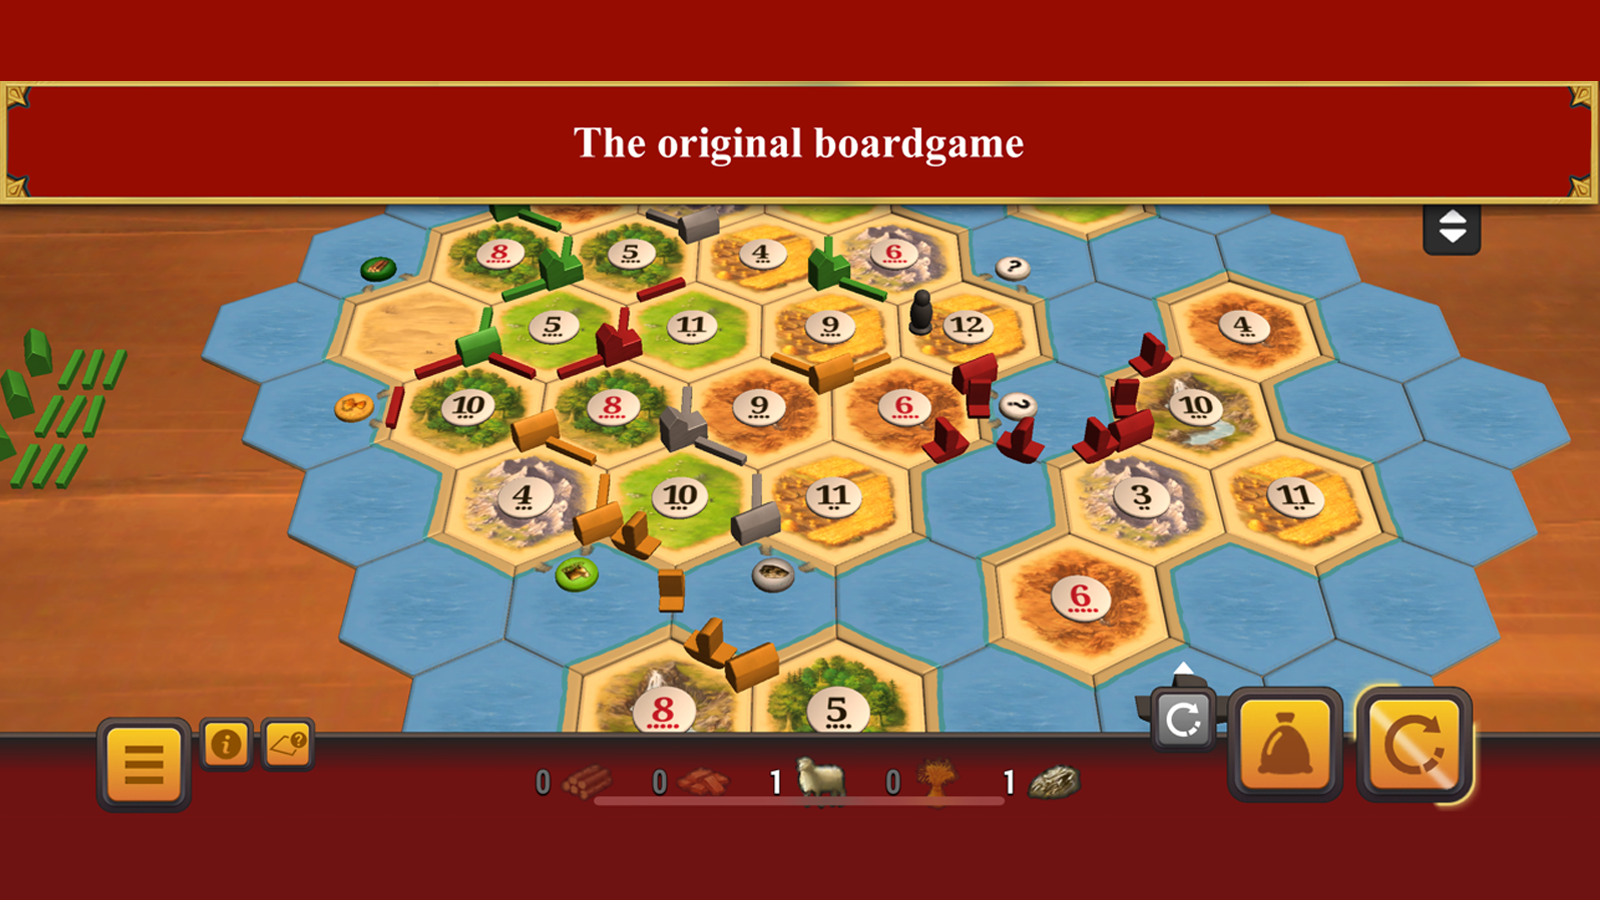 Catan gameplay with player settlements and resource cards